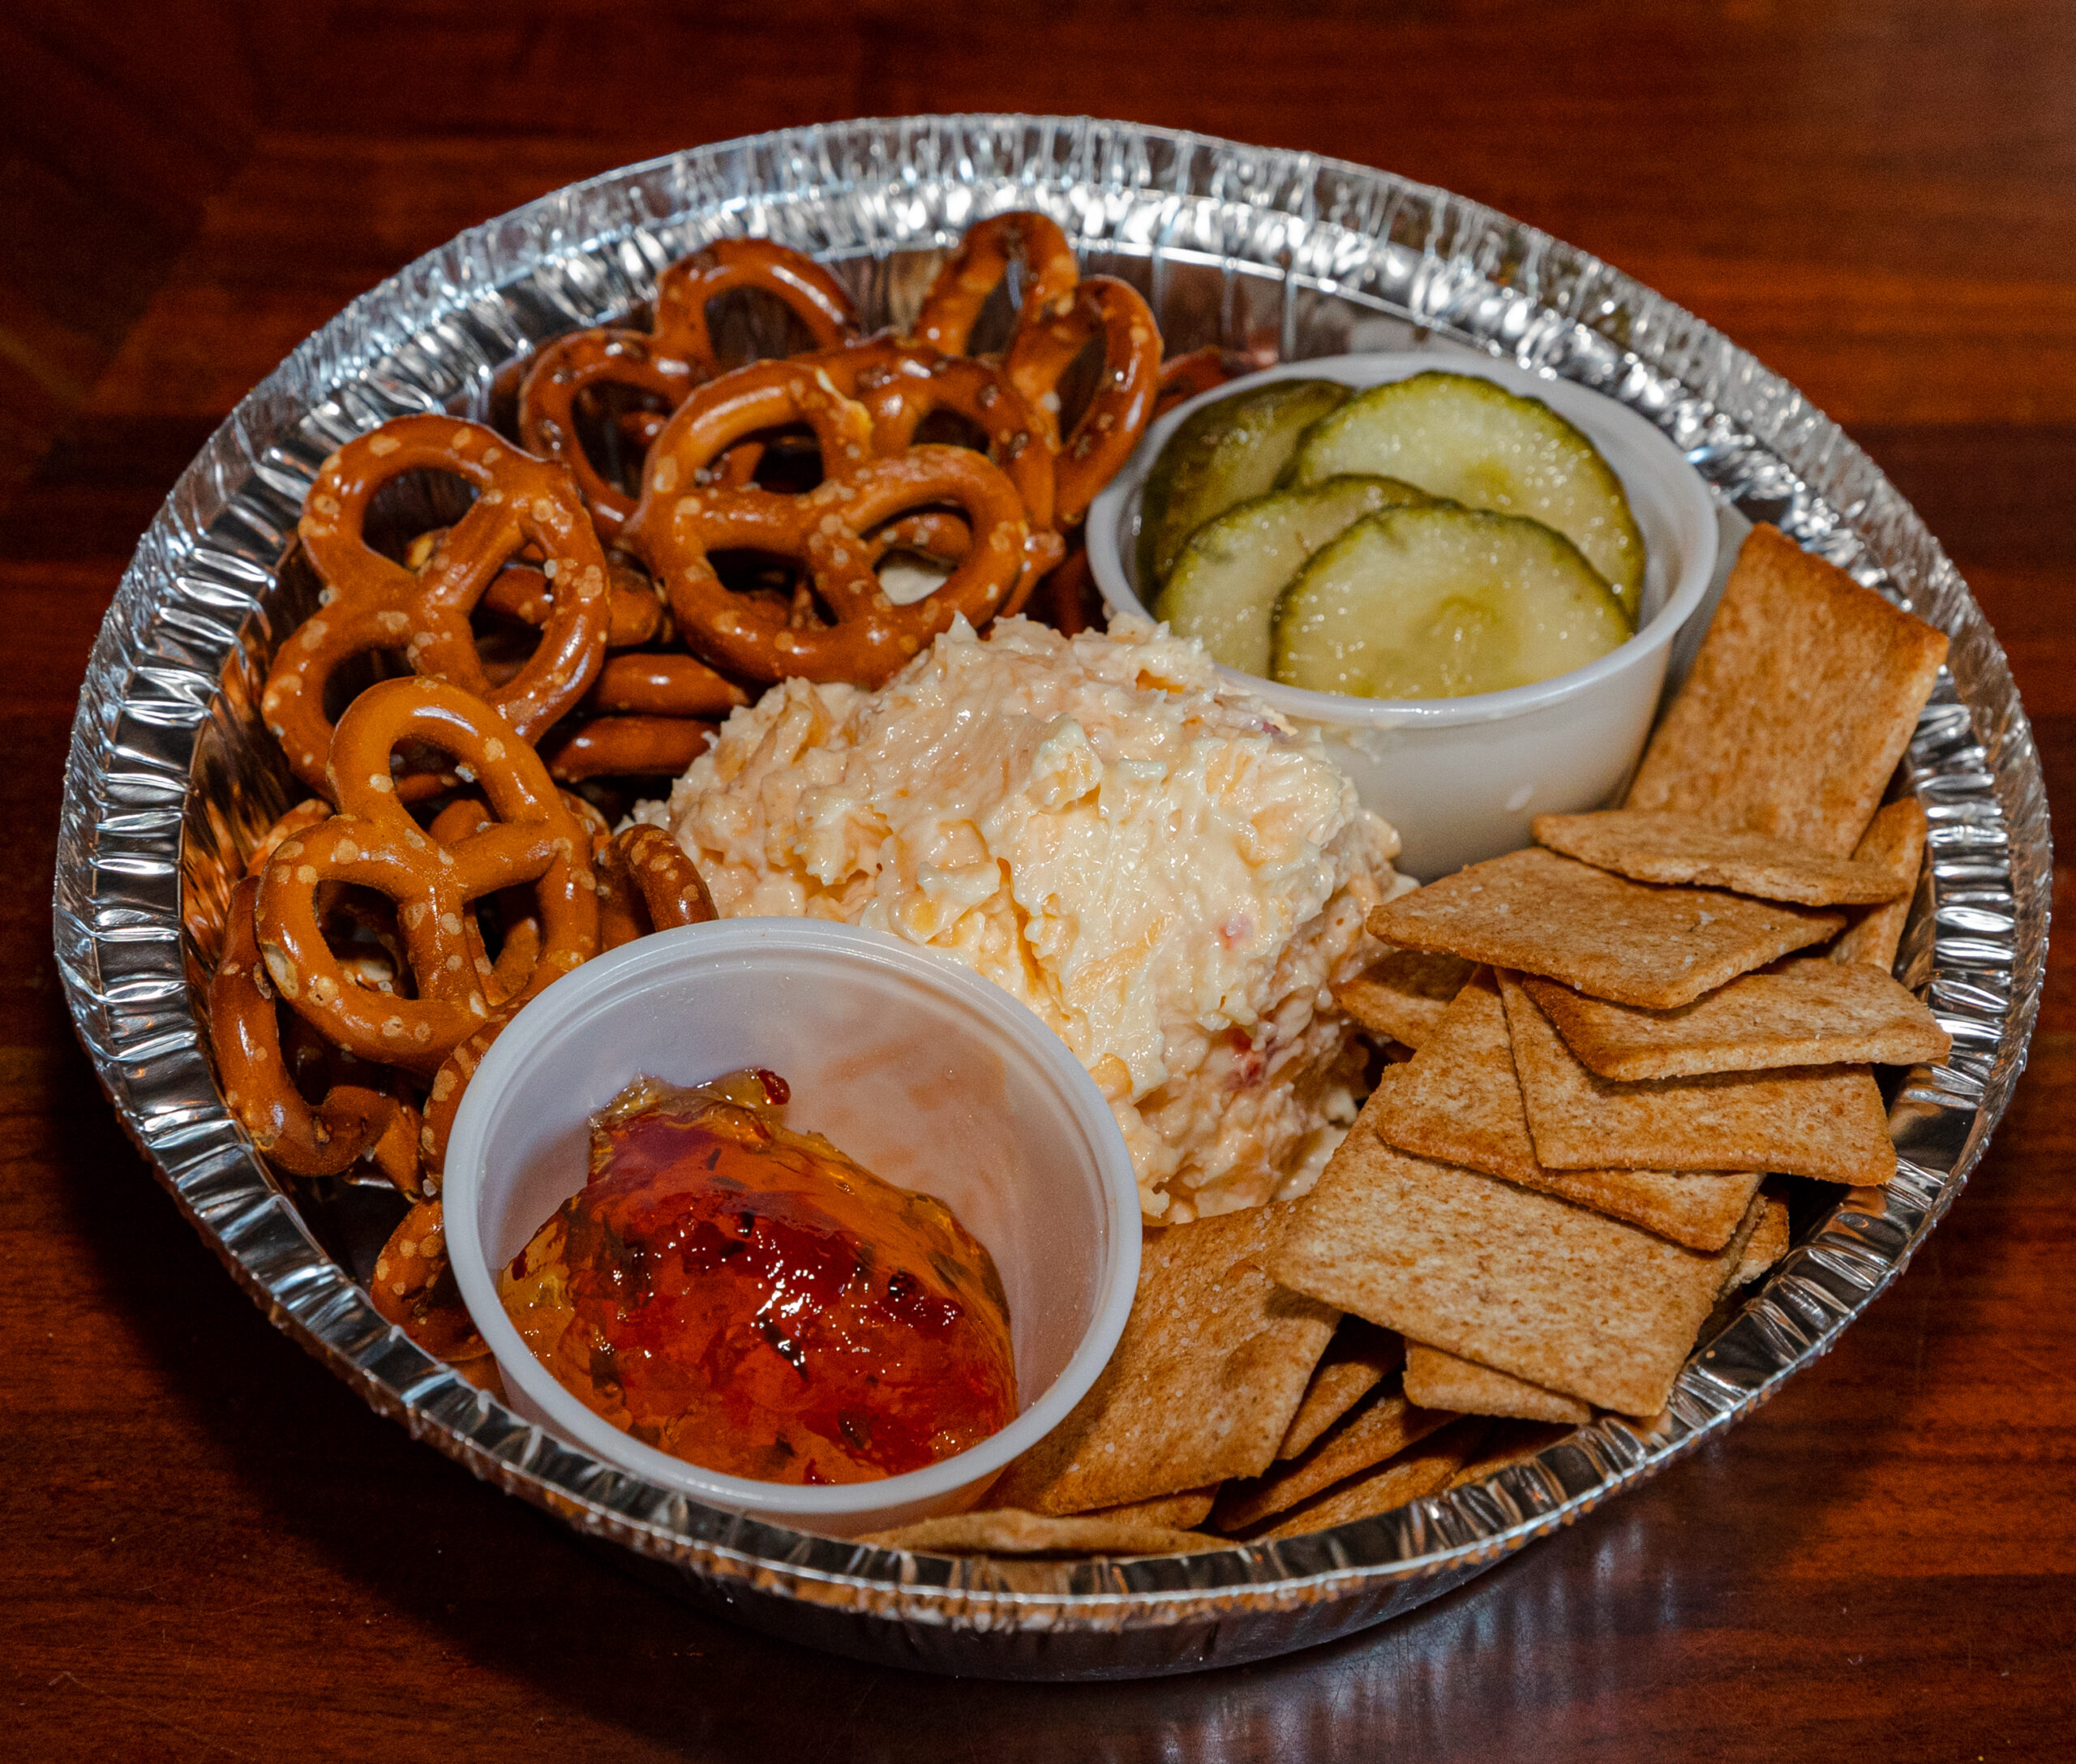 Pimento Cheese Plate